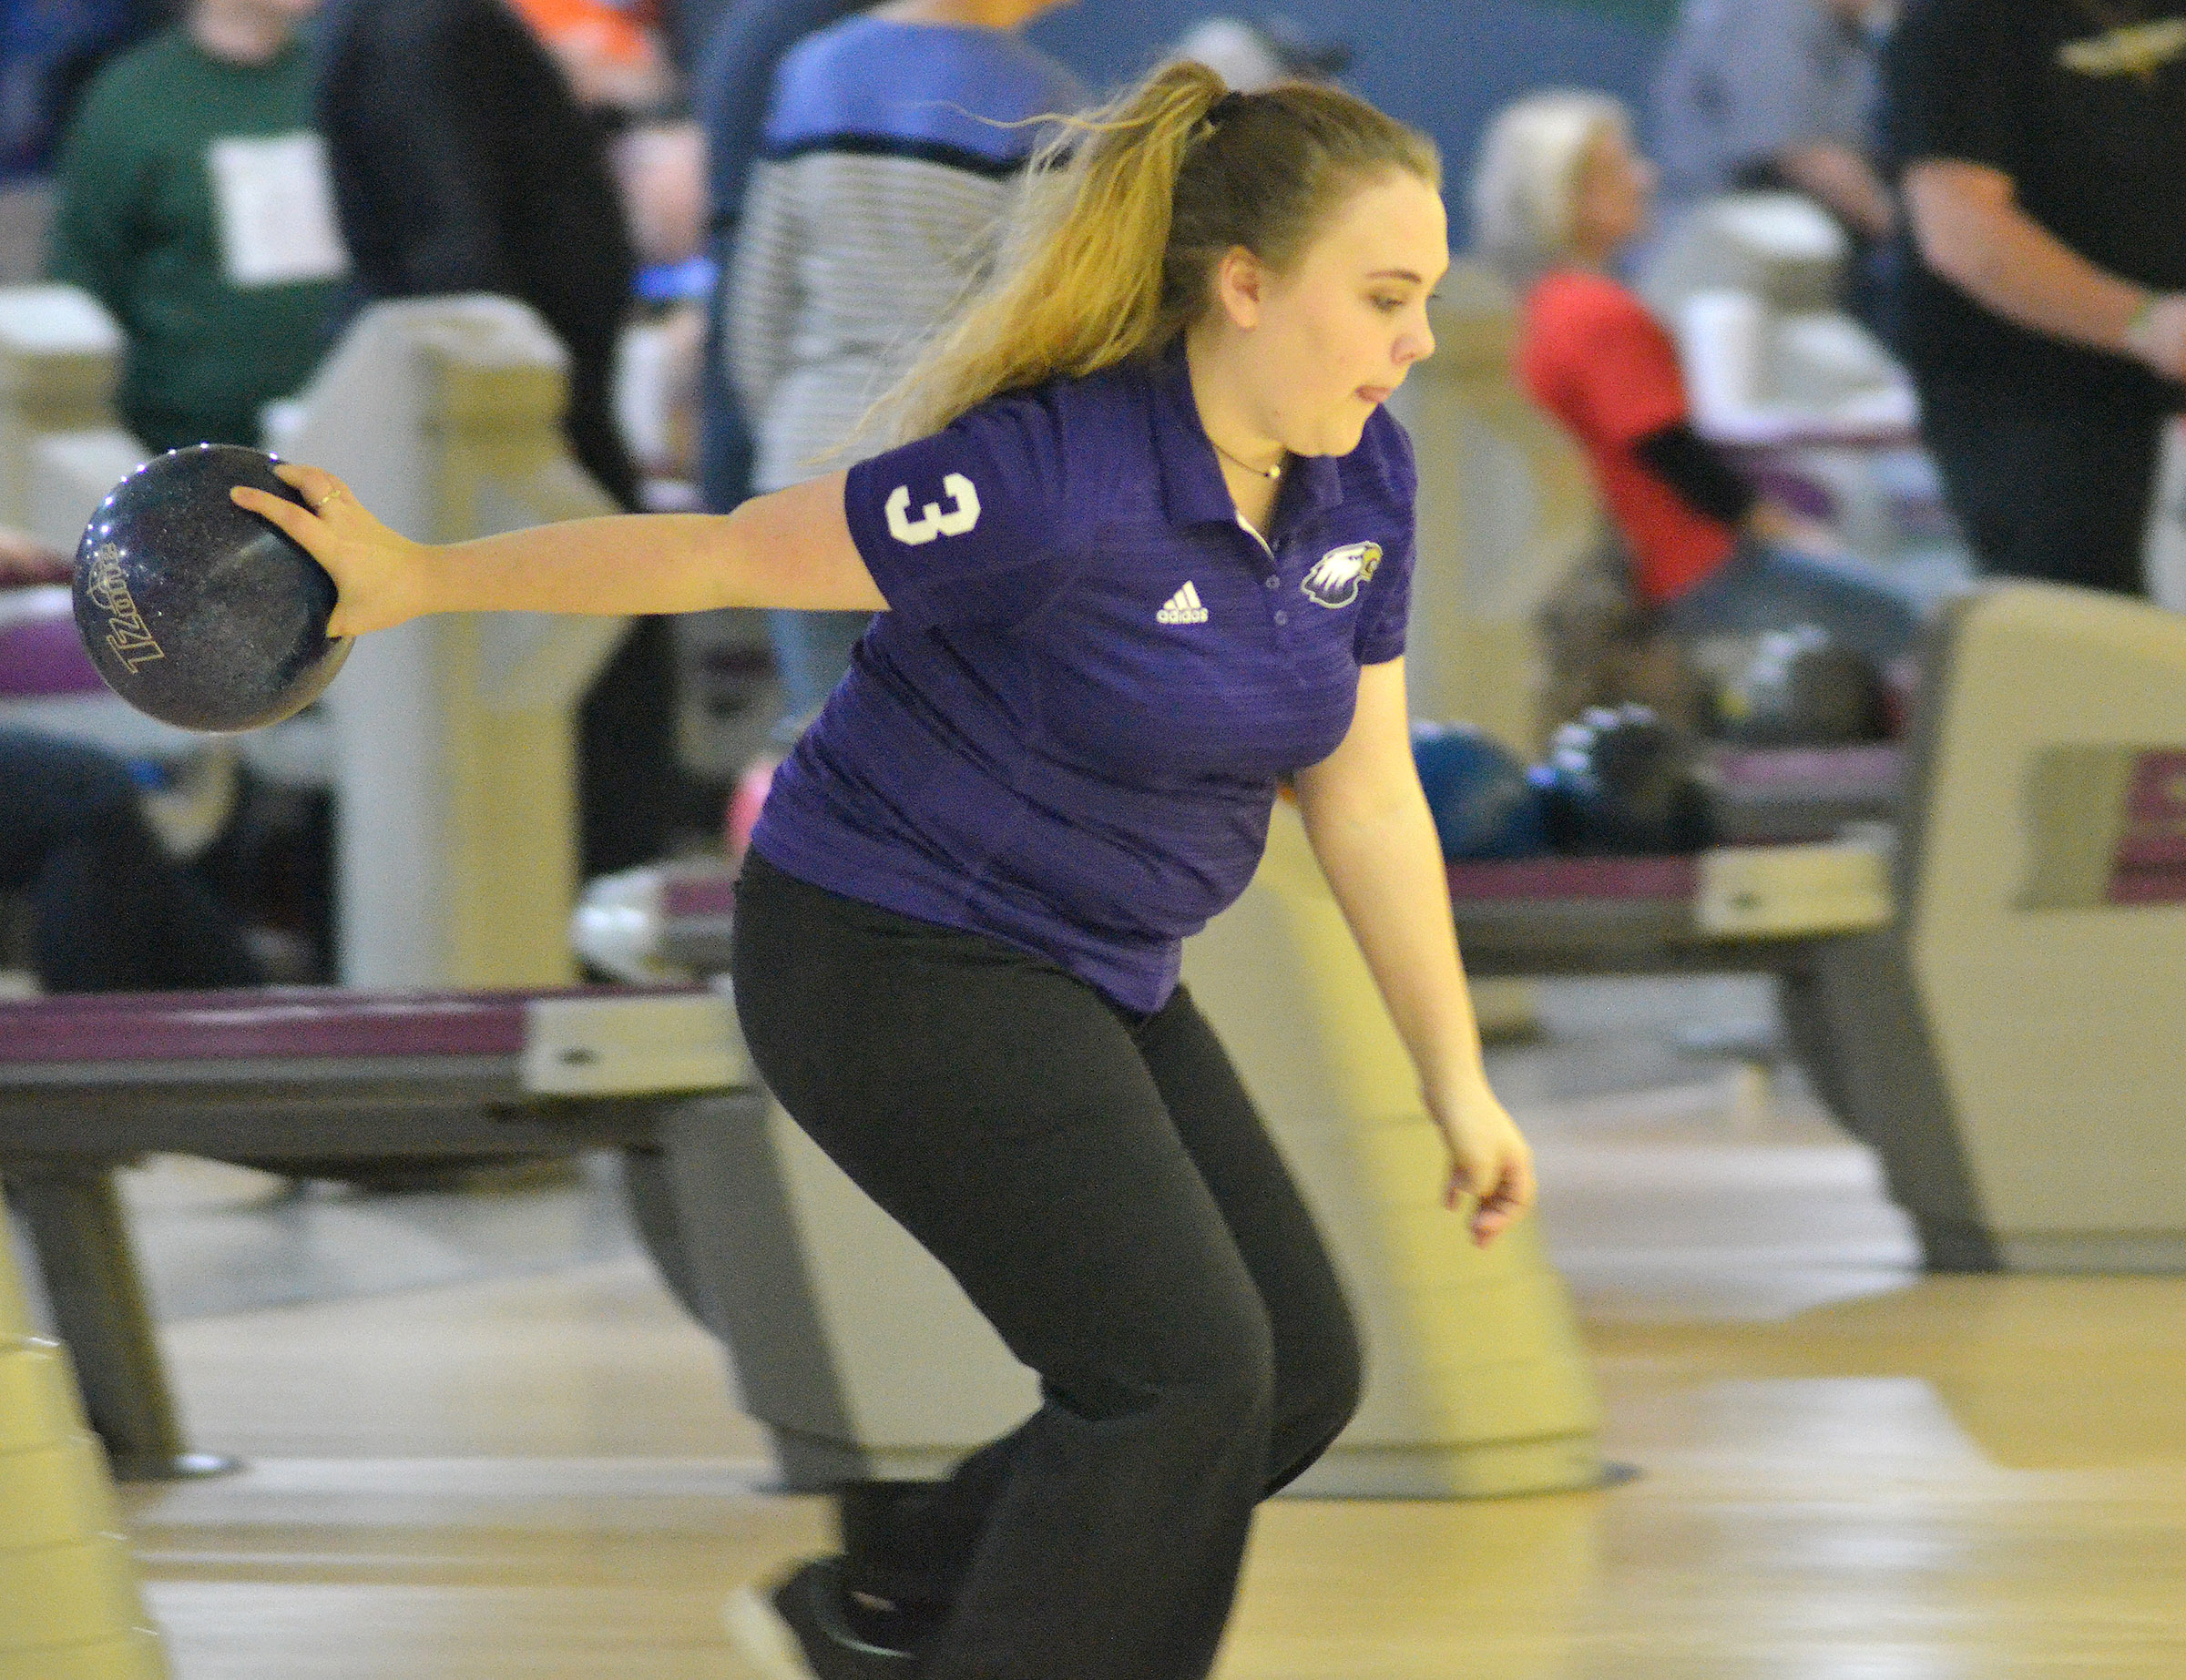 CHS senior Haley Fitch bowls.